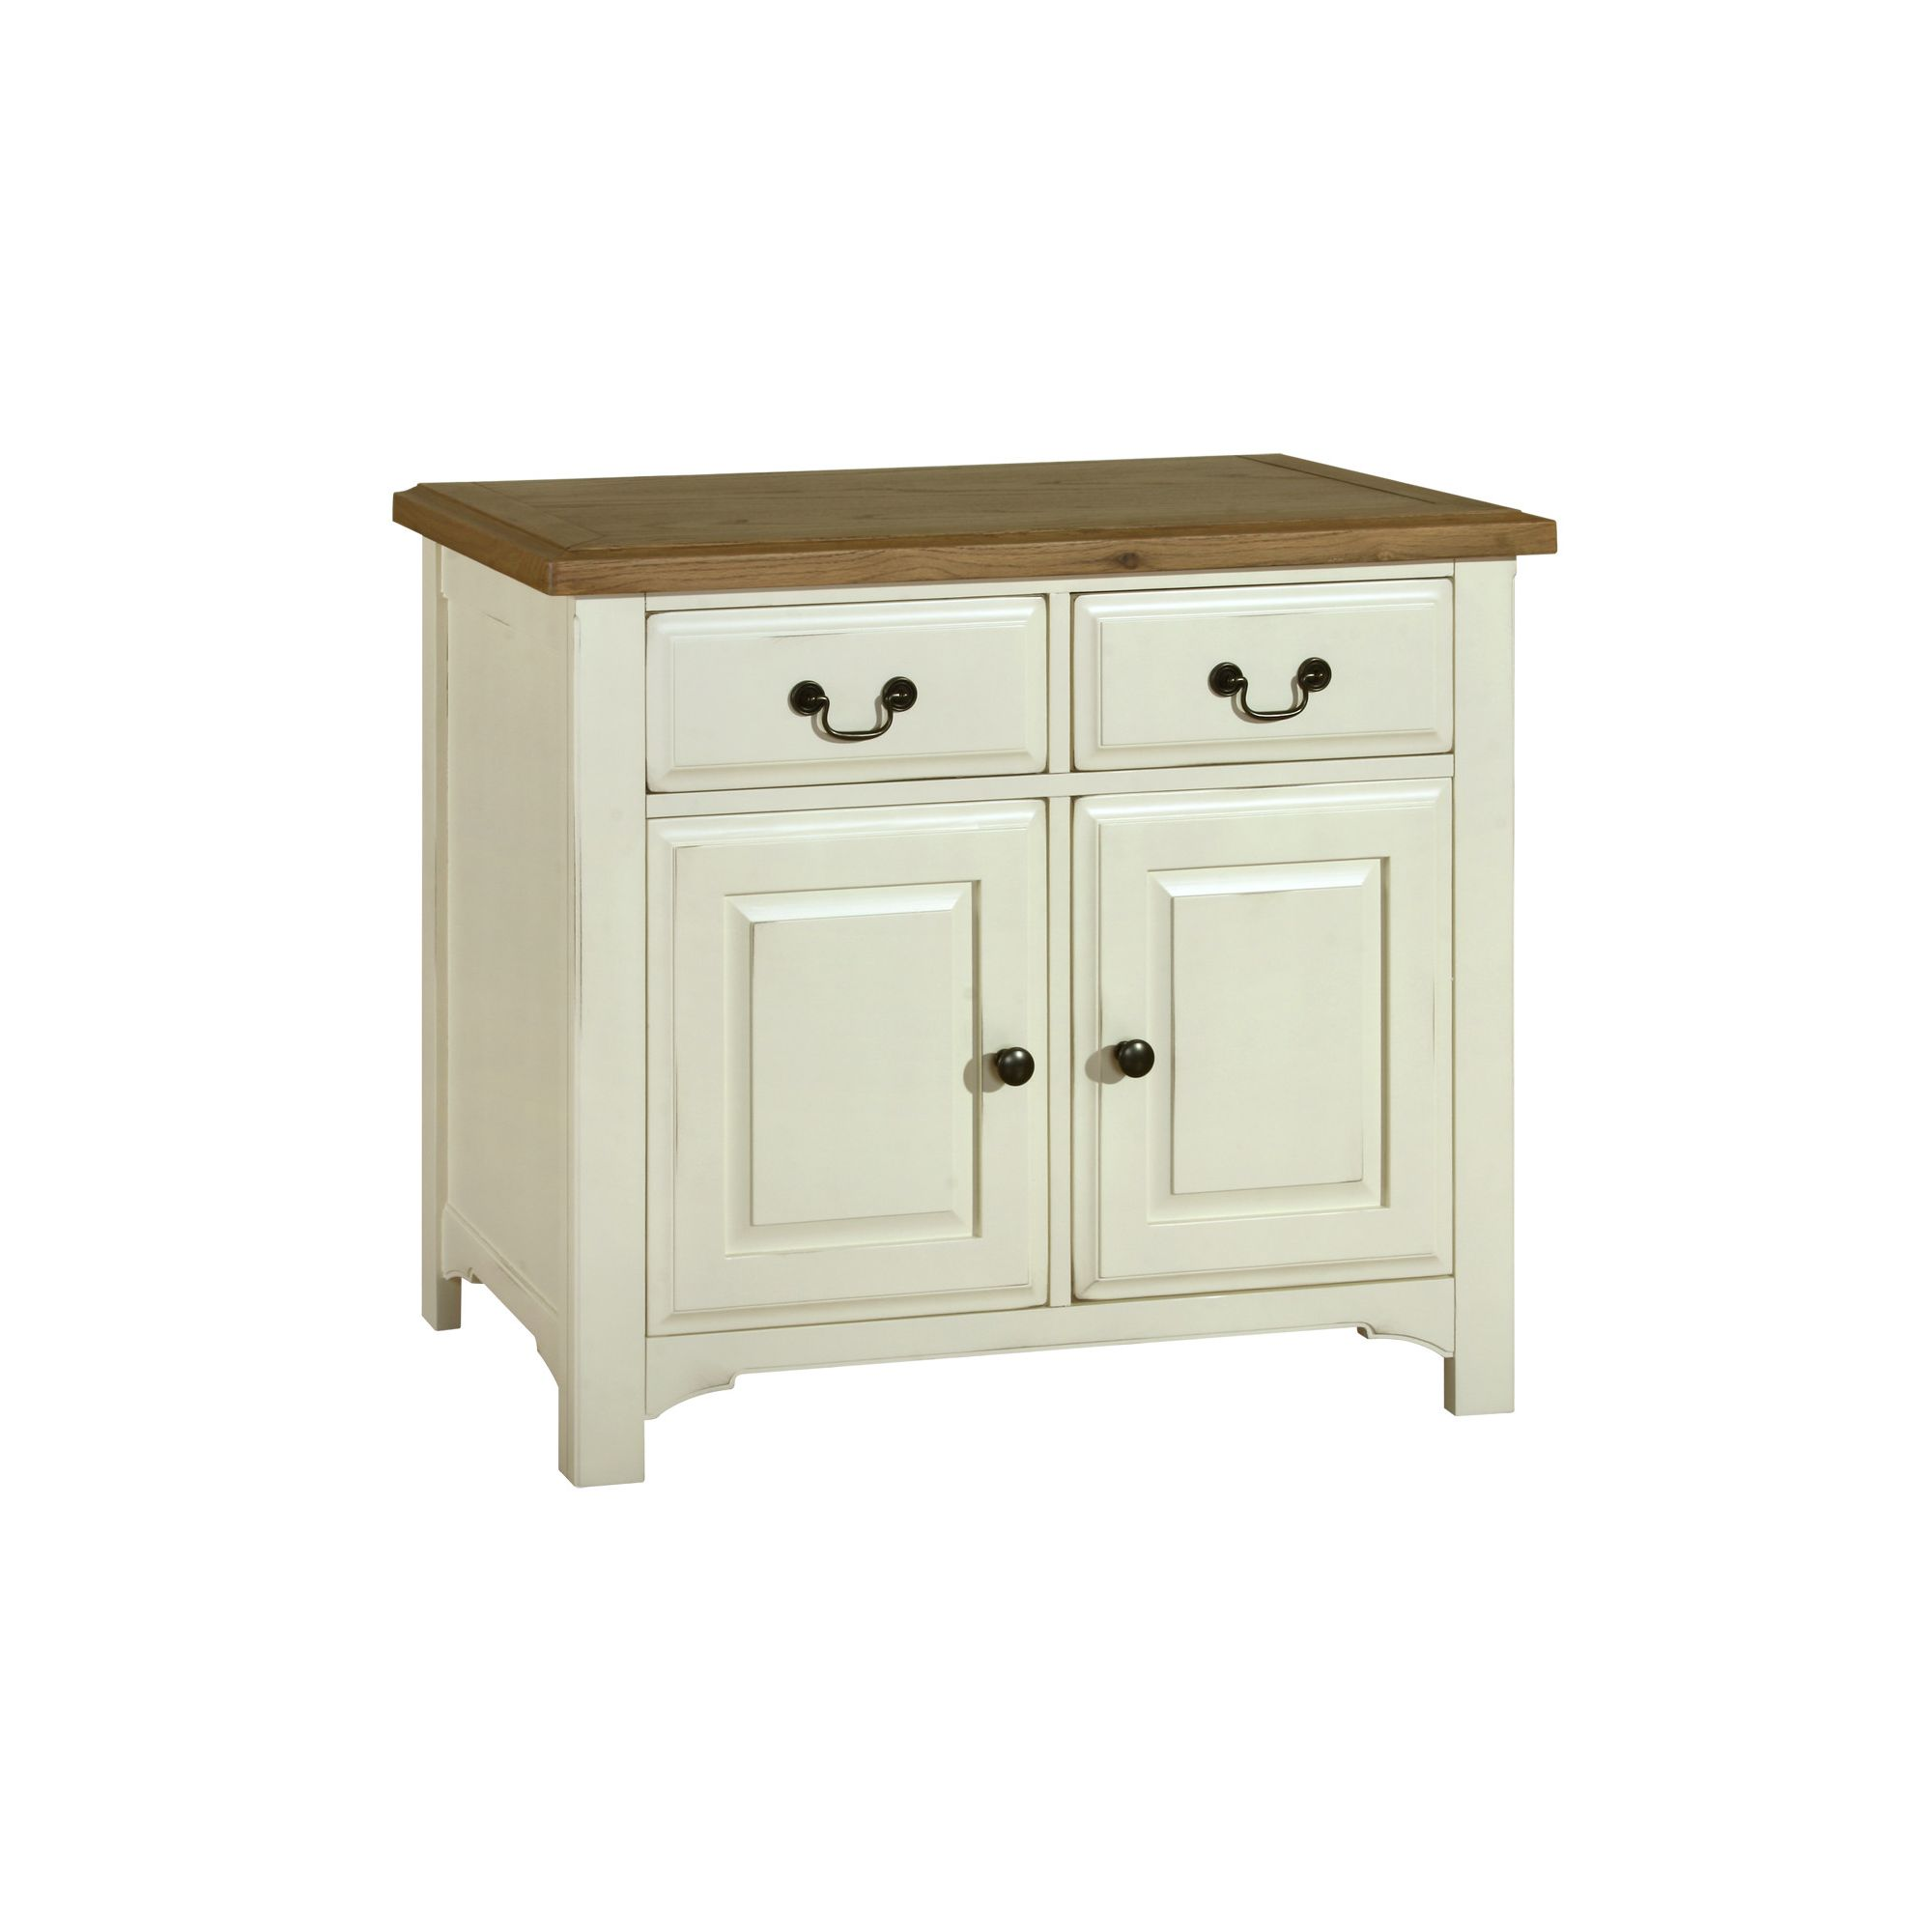 Alterton Furniture Marseille Small Sideboard at Tesco Direct